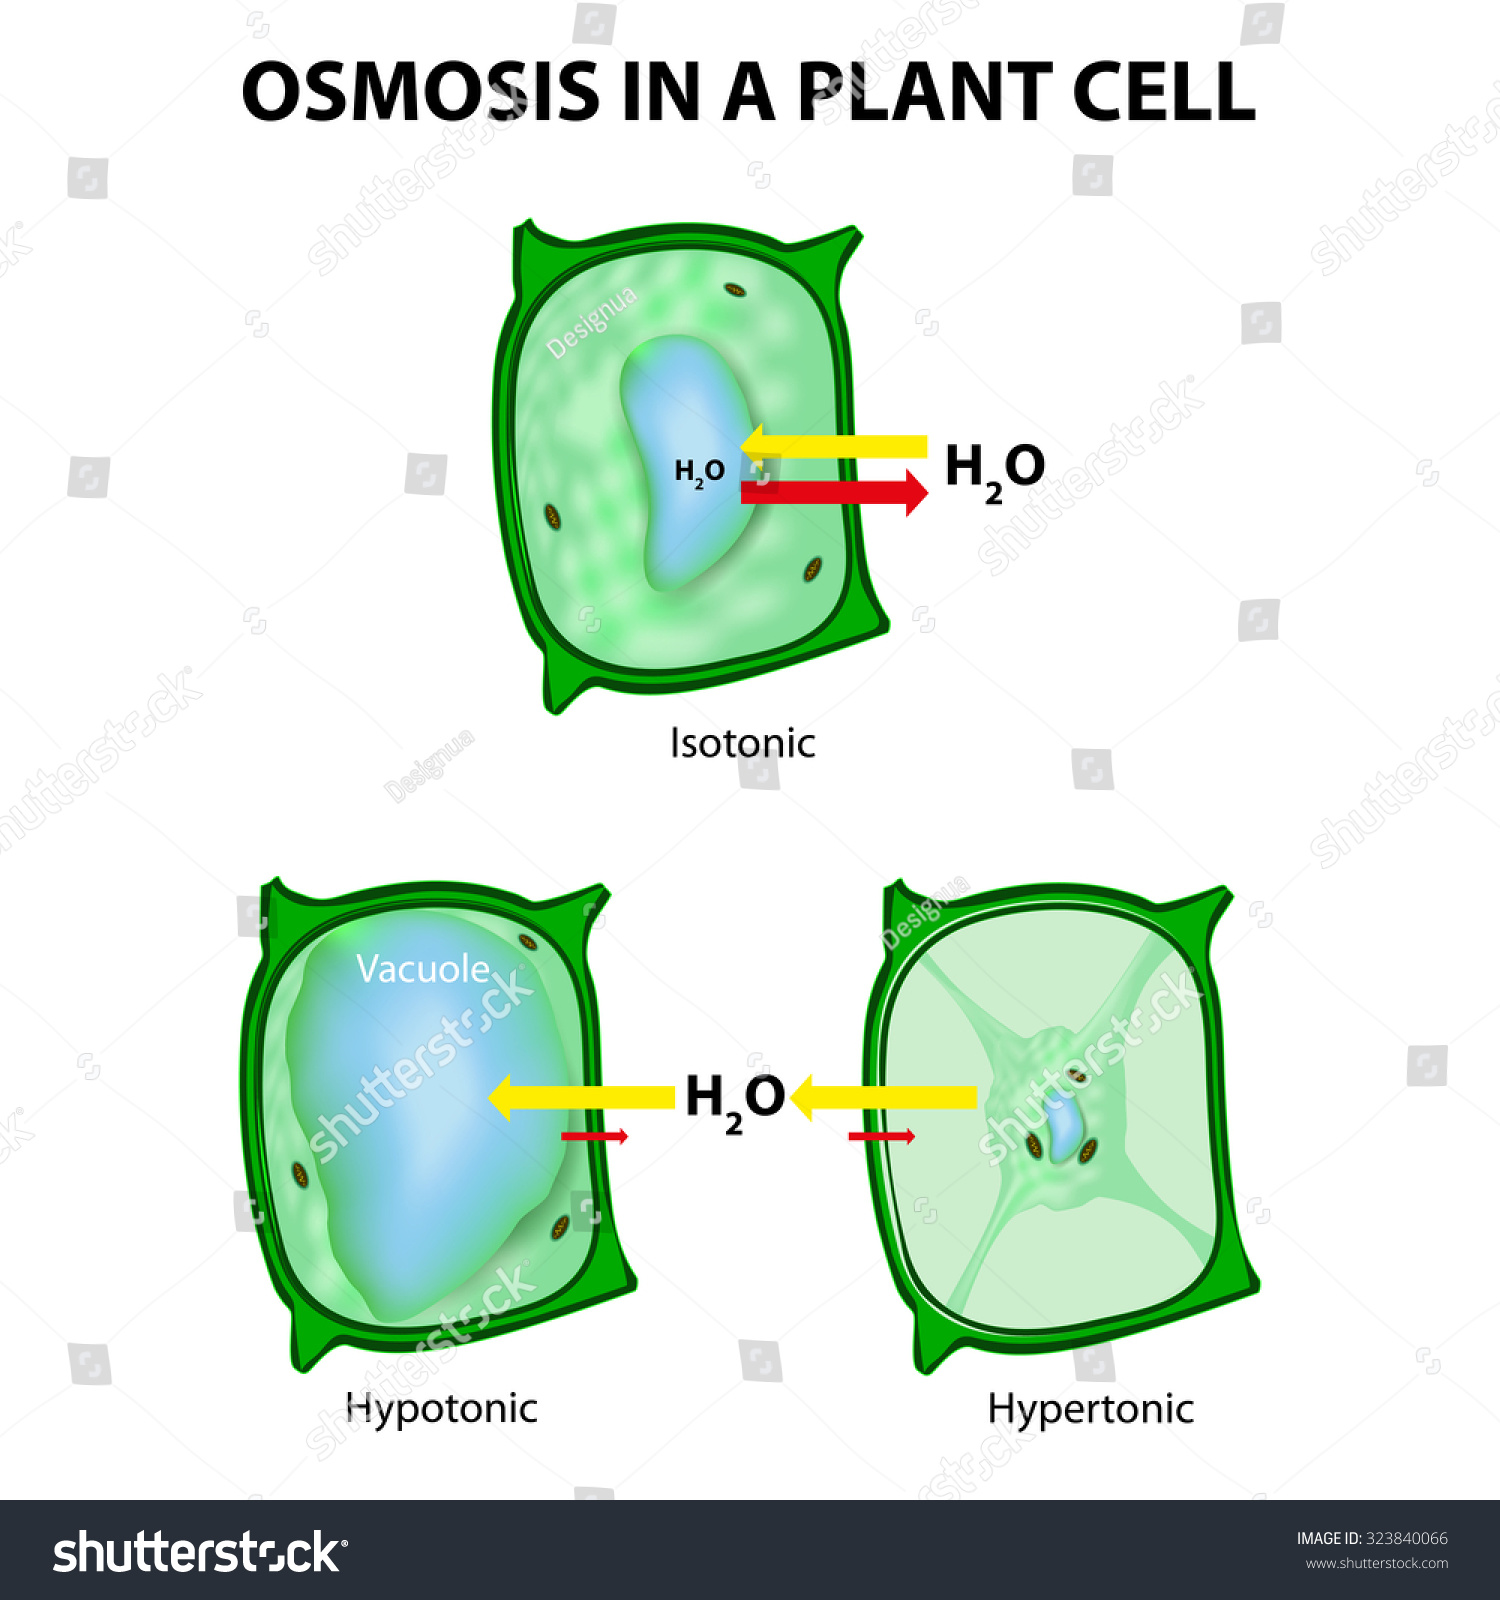 Osmosis Plant Cell 3 Types Tonicity Stock Vector